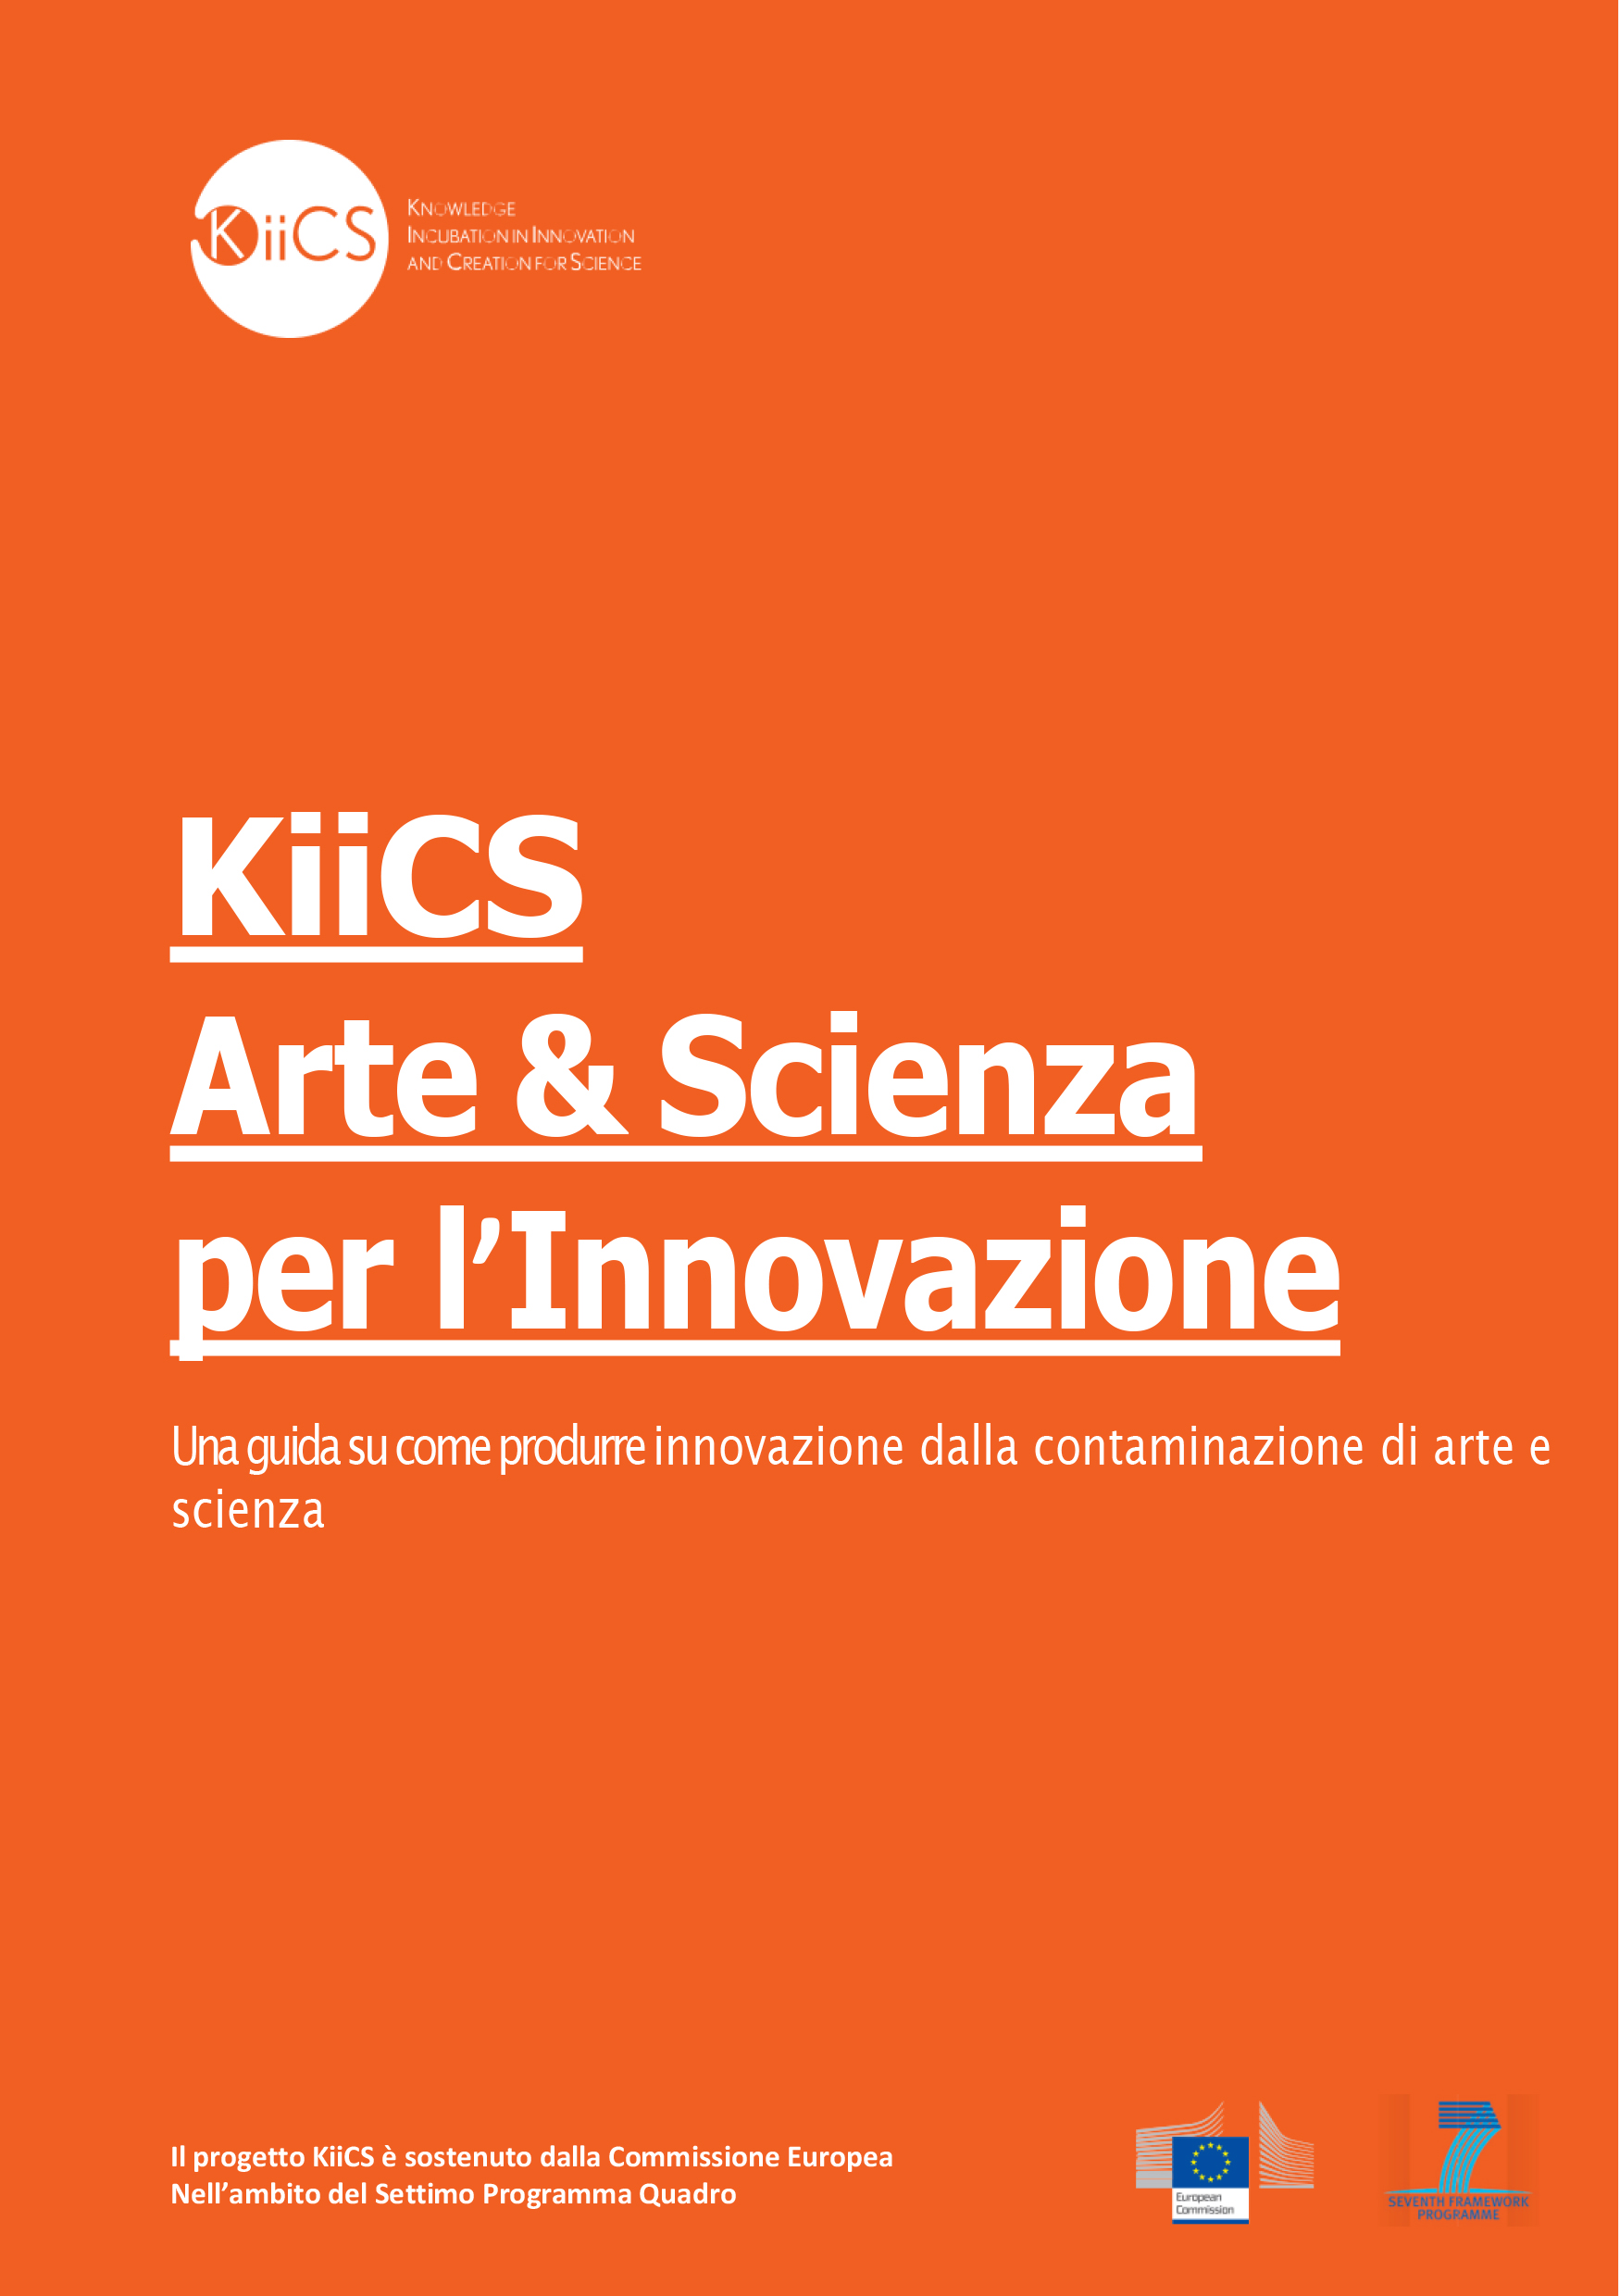 KiiCS_Toolkit.indd